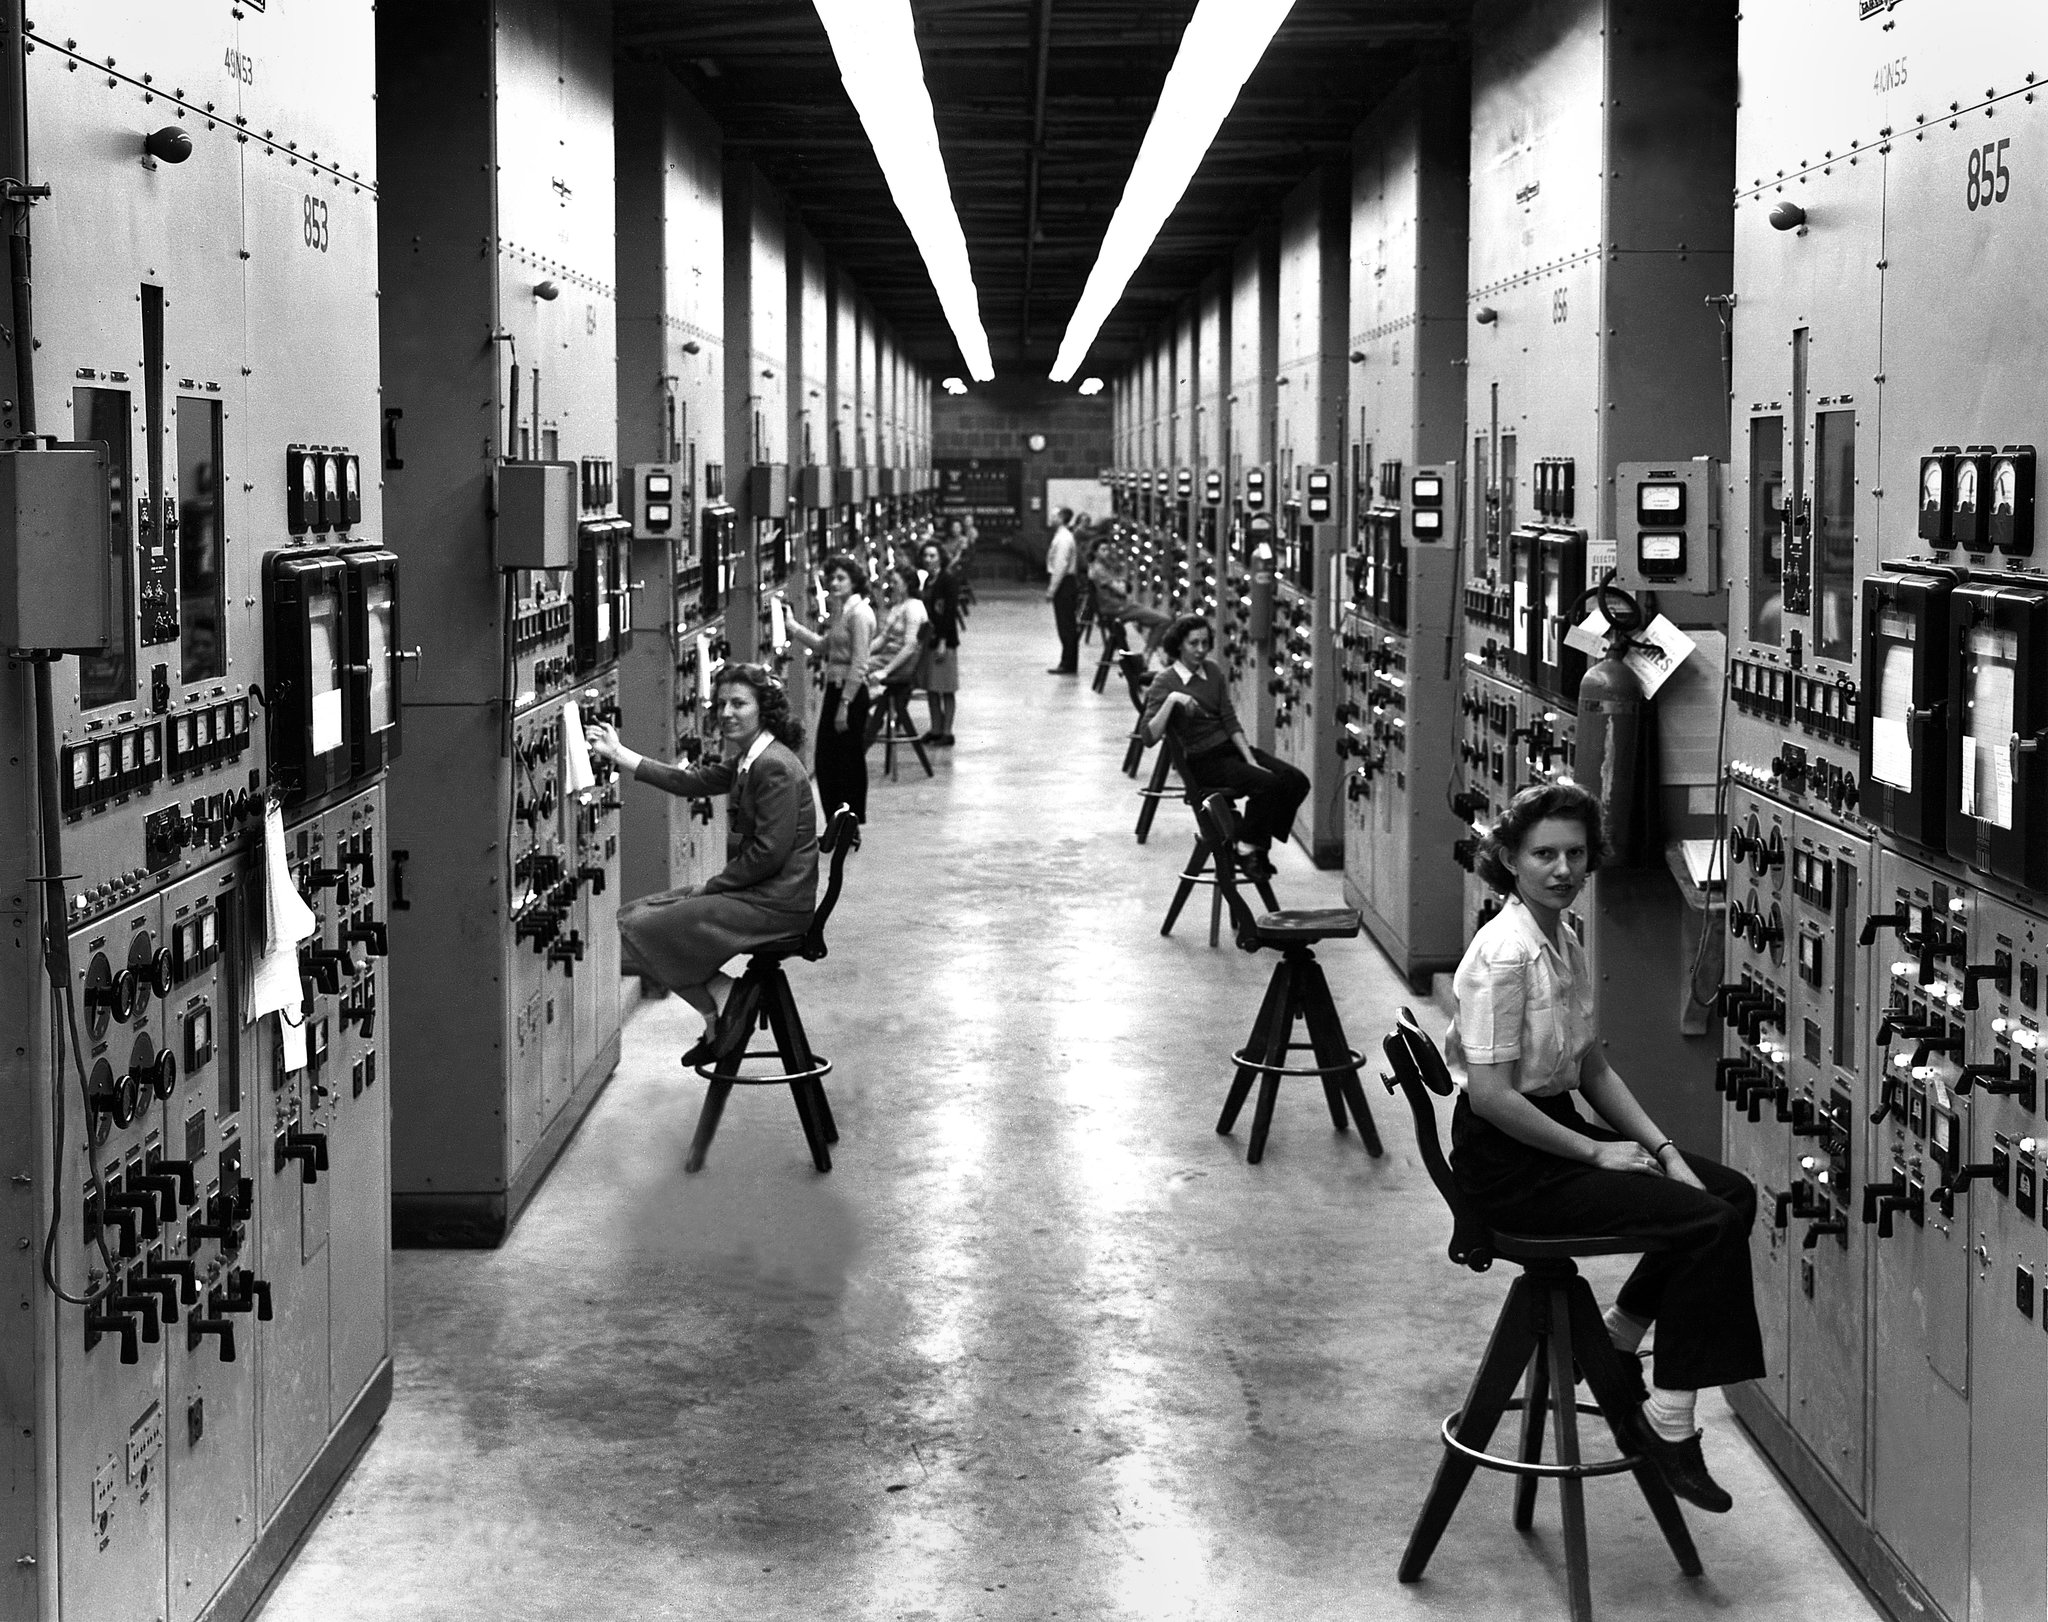 Women at their stations in the calutron, where uranium isotopes were separated. Credit: Ed Westcott/United States Department of Energy, Oak Ridge